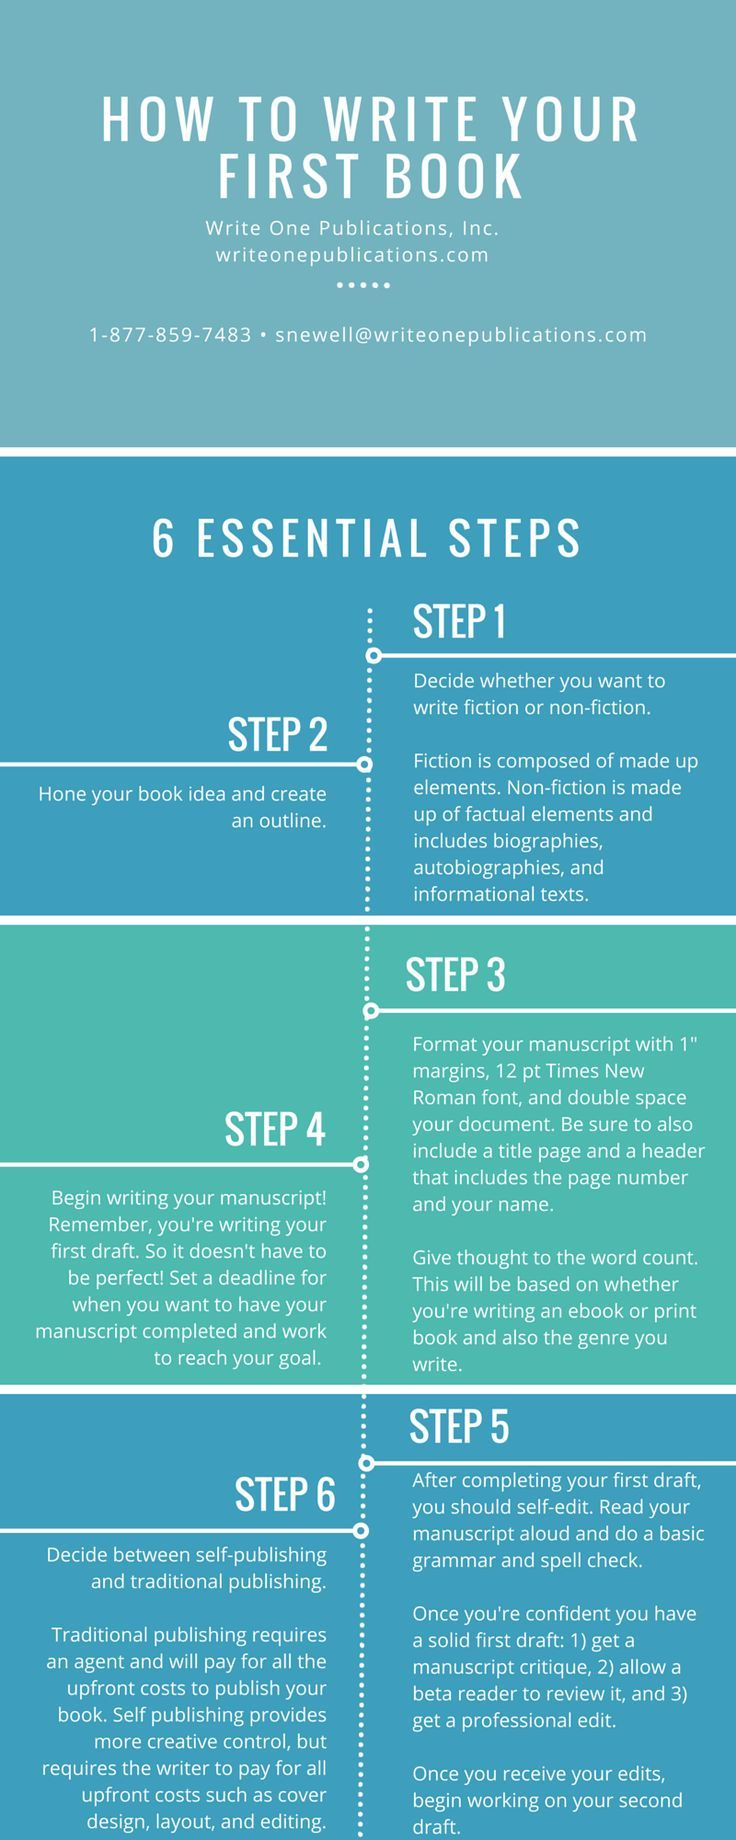 Here are six essential steps for writing your first book